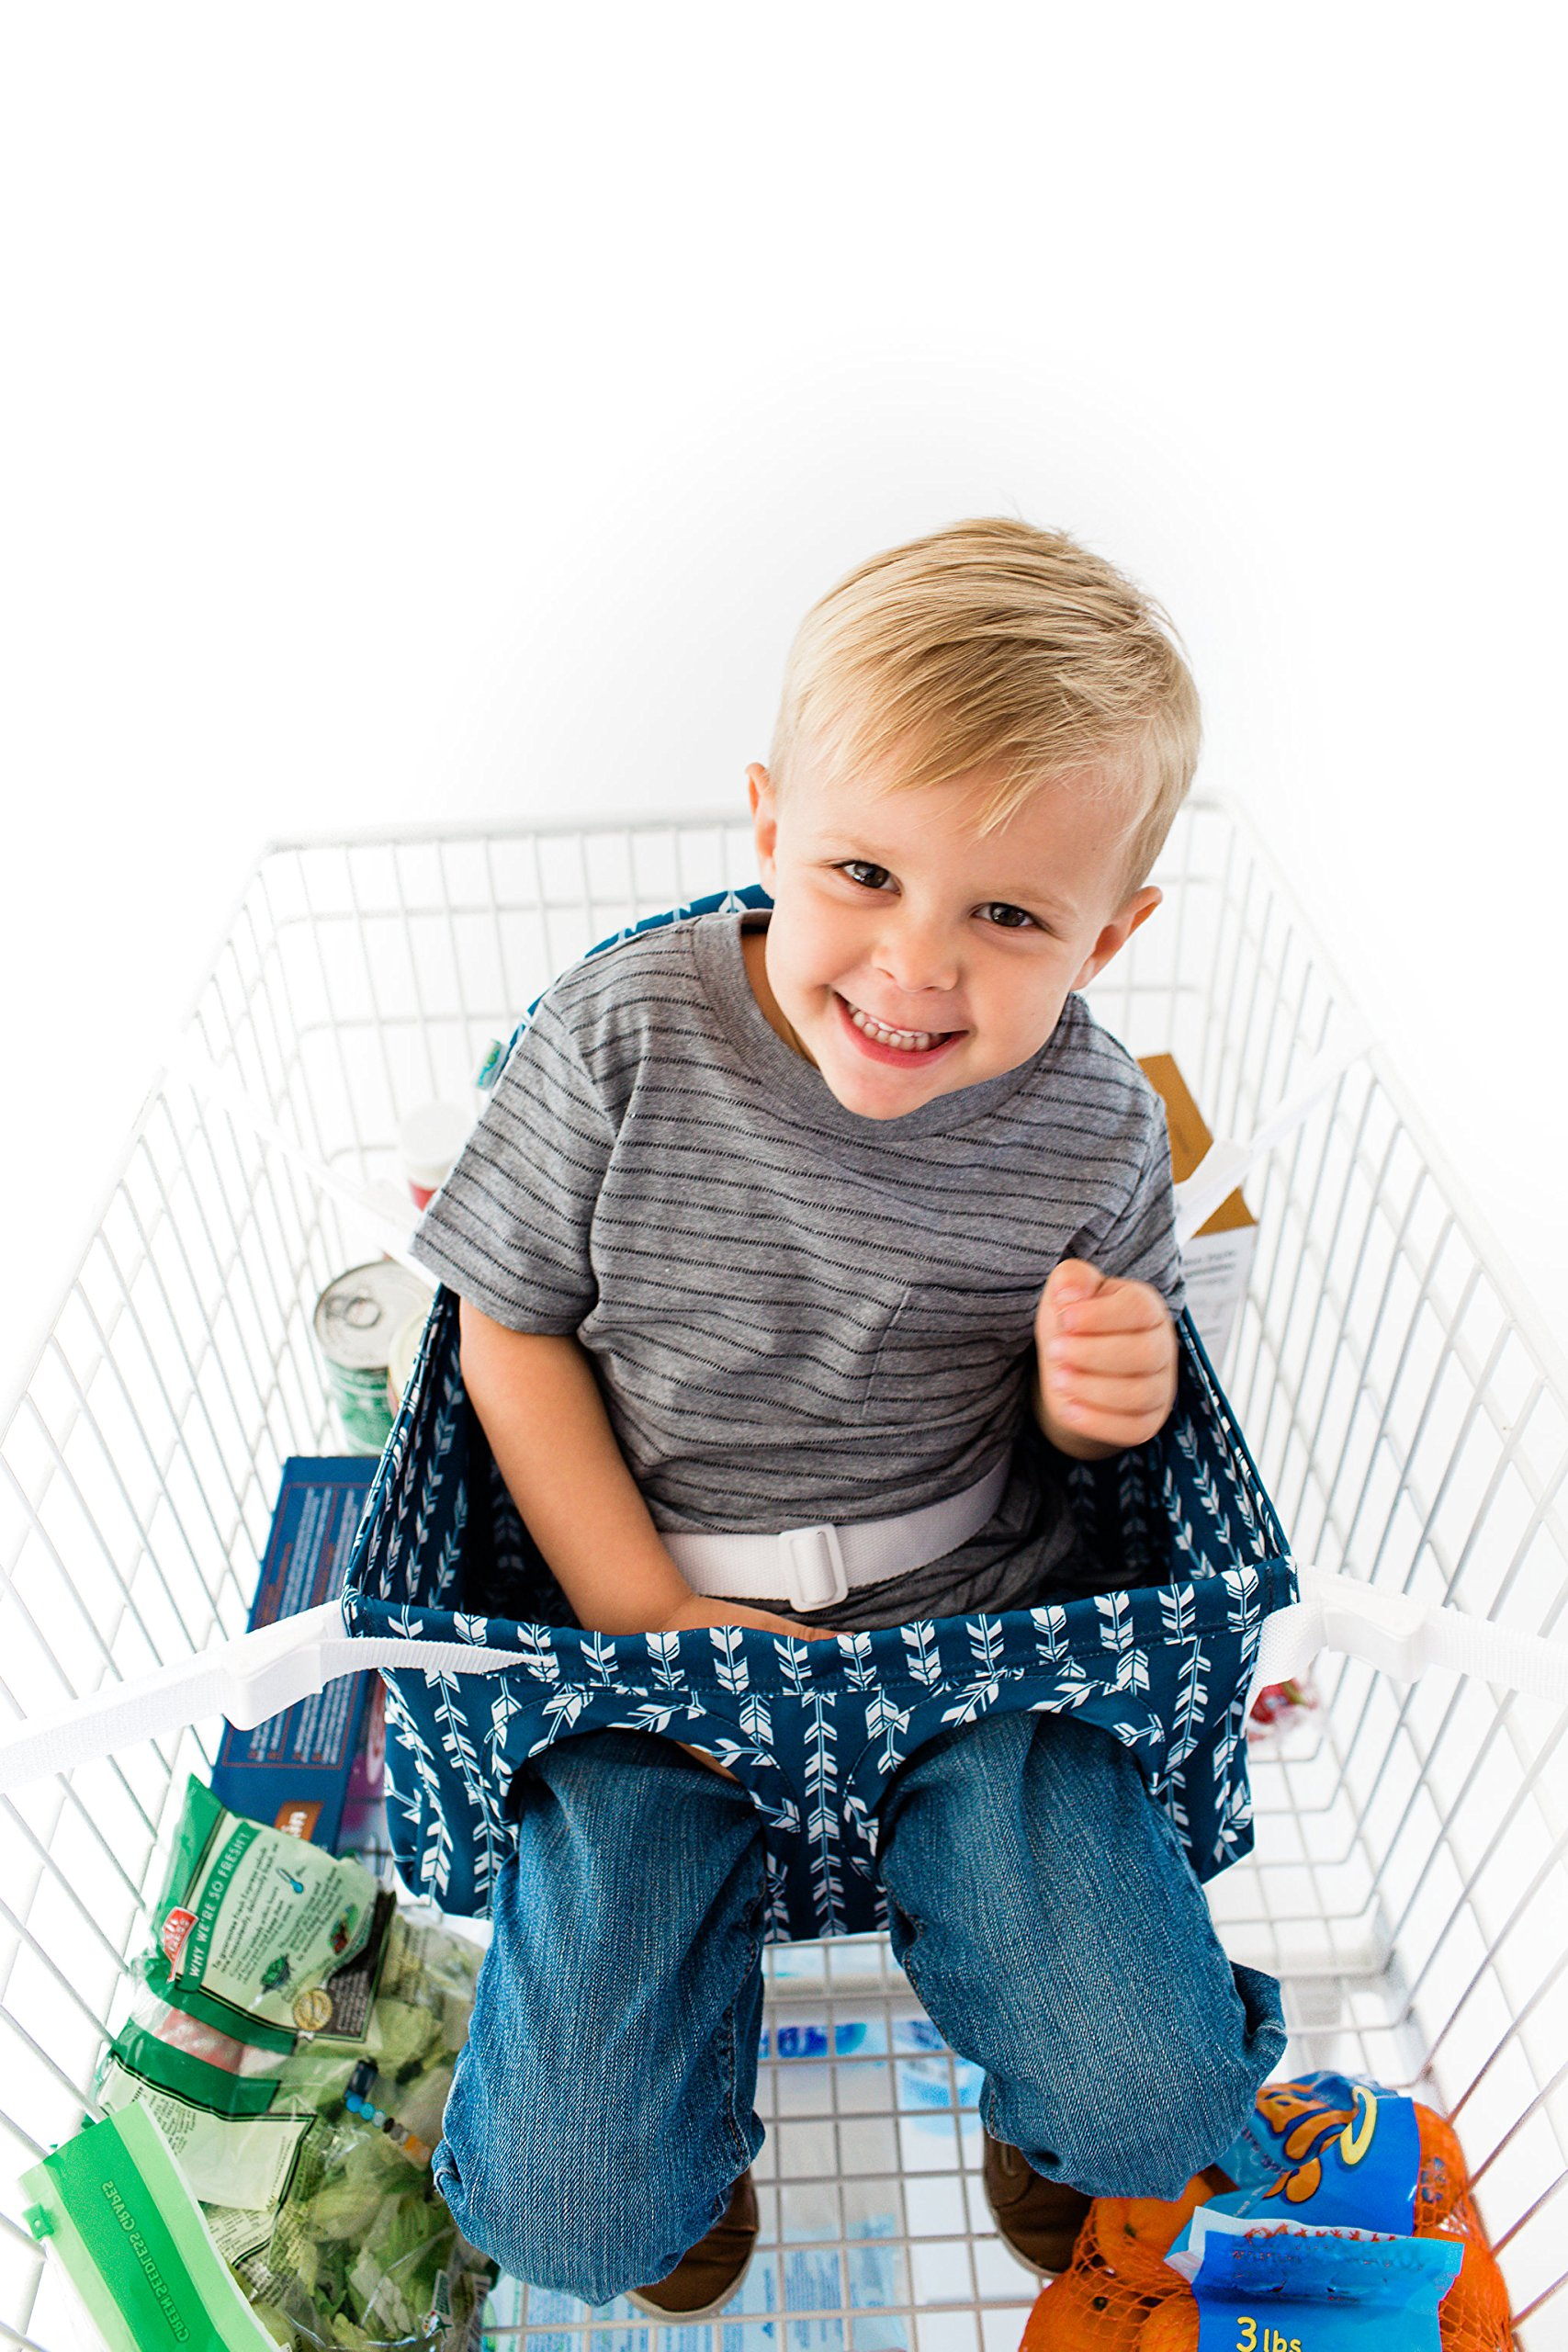 Buggy Bench The Original Shopping Cart Seat (Navy Blue) for Baby, Toddler, Twins, and Triplets (Up to 40 Pounds)